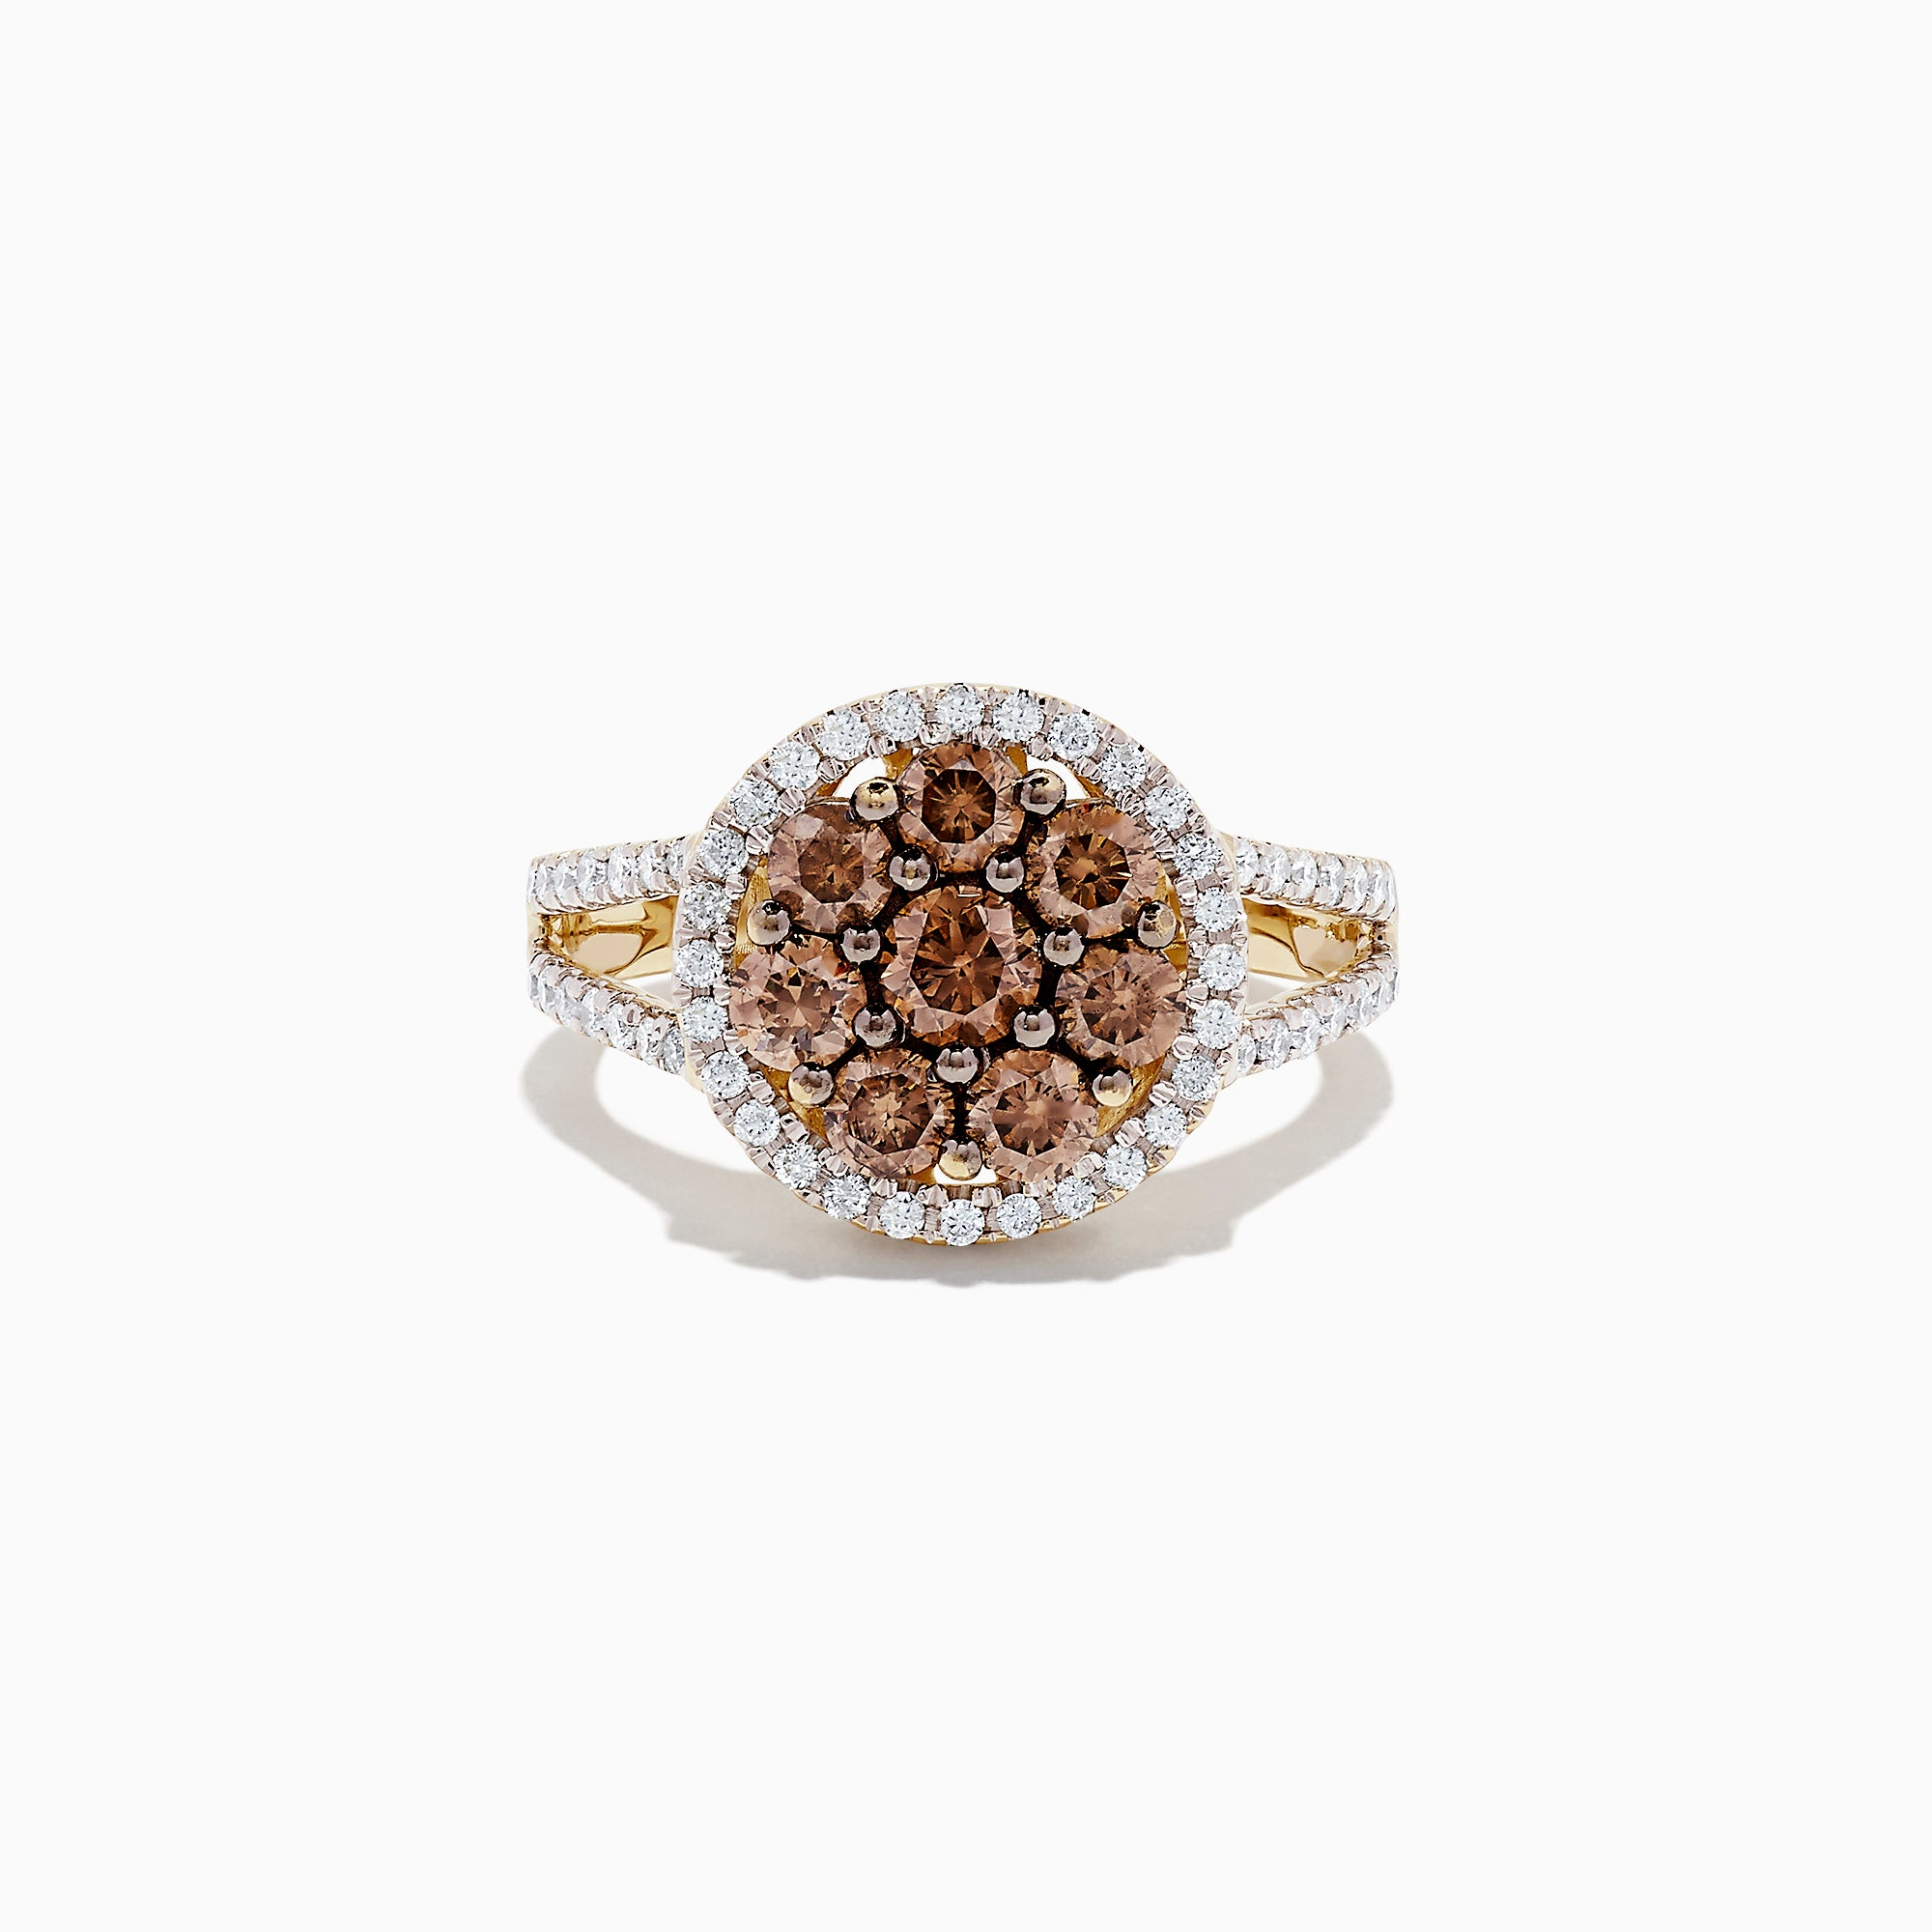 14K Yellow Gold Cognac and White Diamond Ring, 1.45 TCW